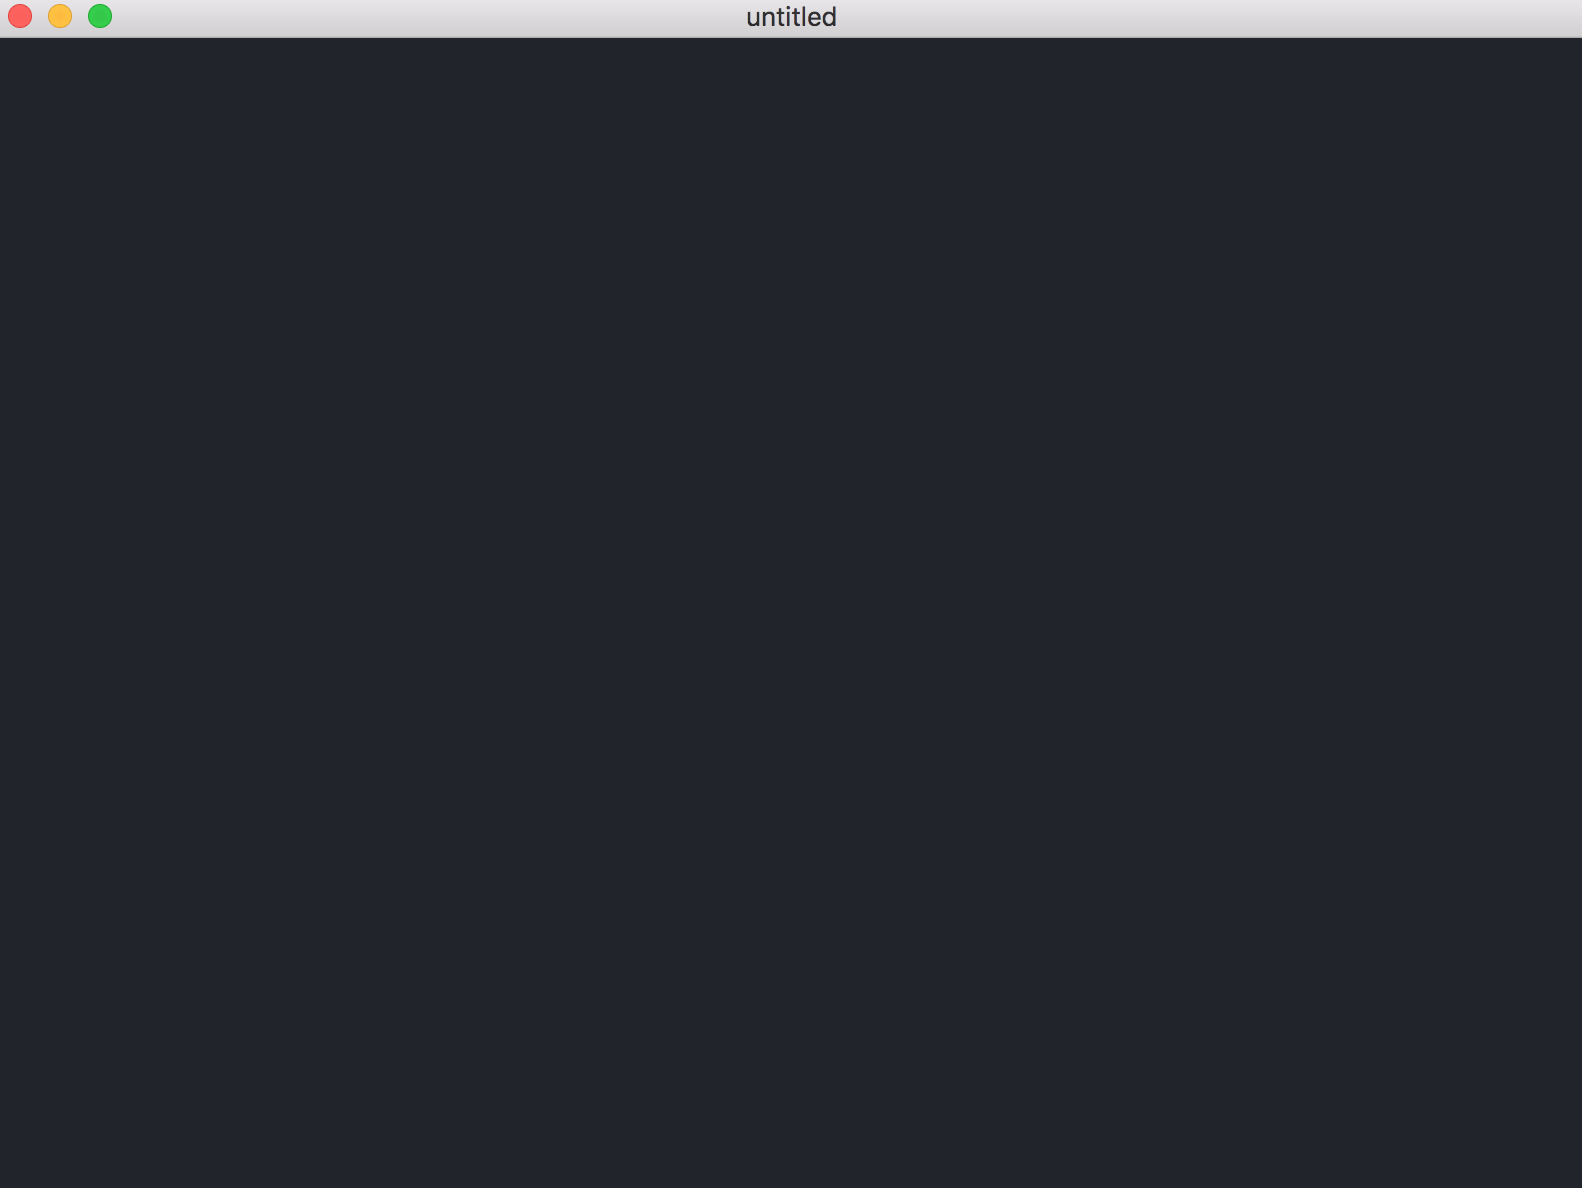 Window is blank on Mac · Issue #15342 · atom/atom · GitHub